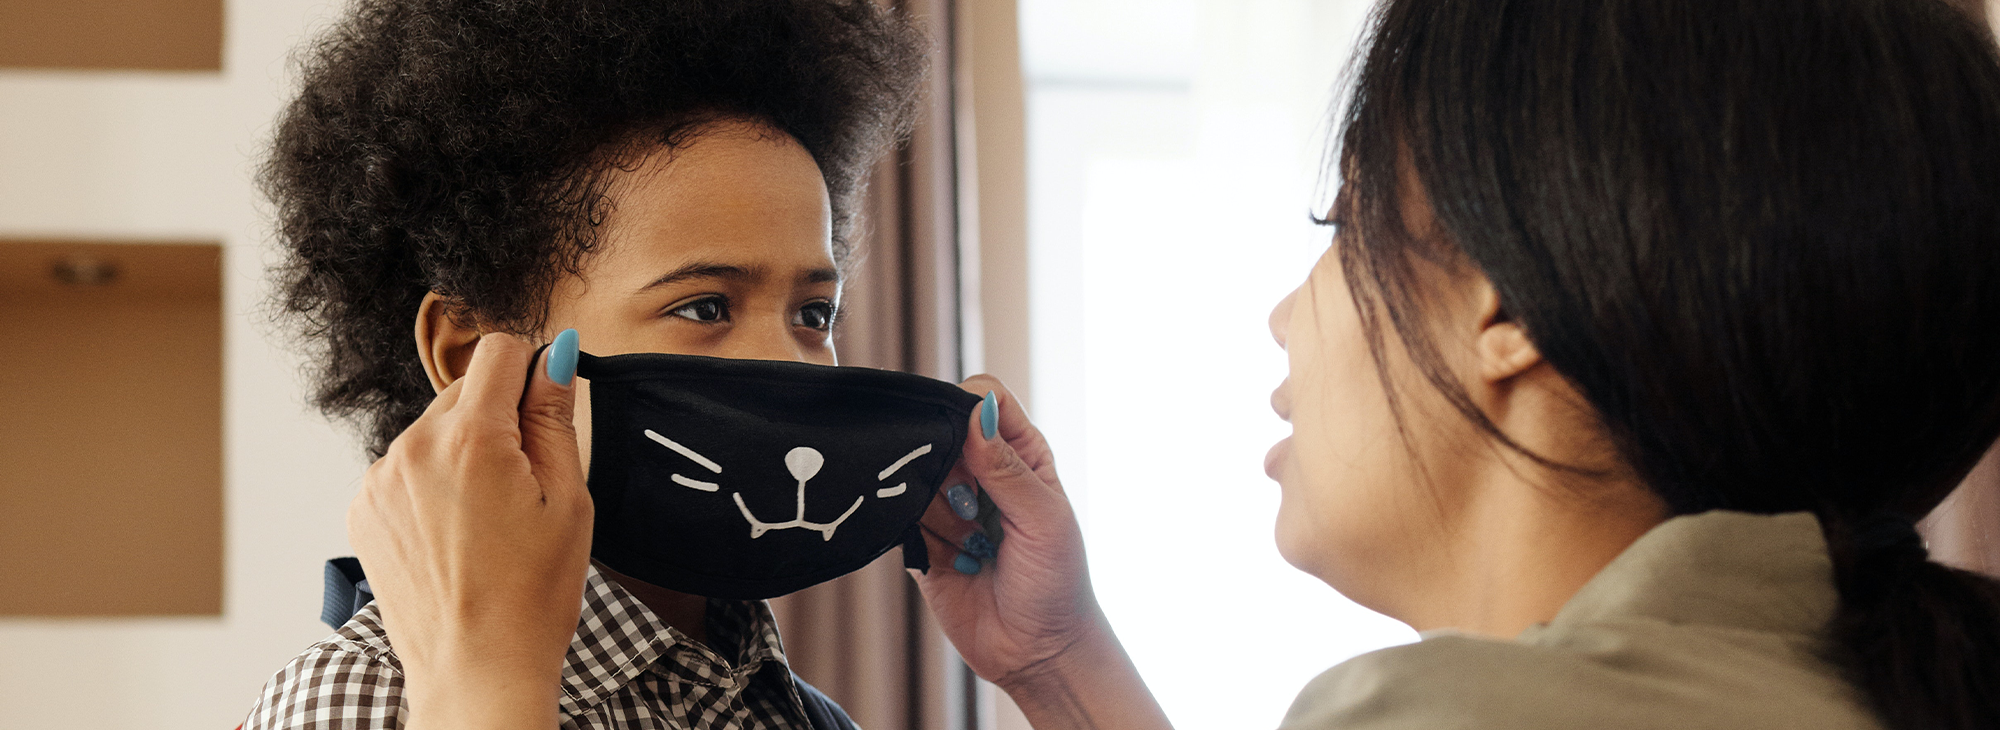 Customize Your Personal Products